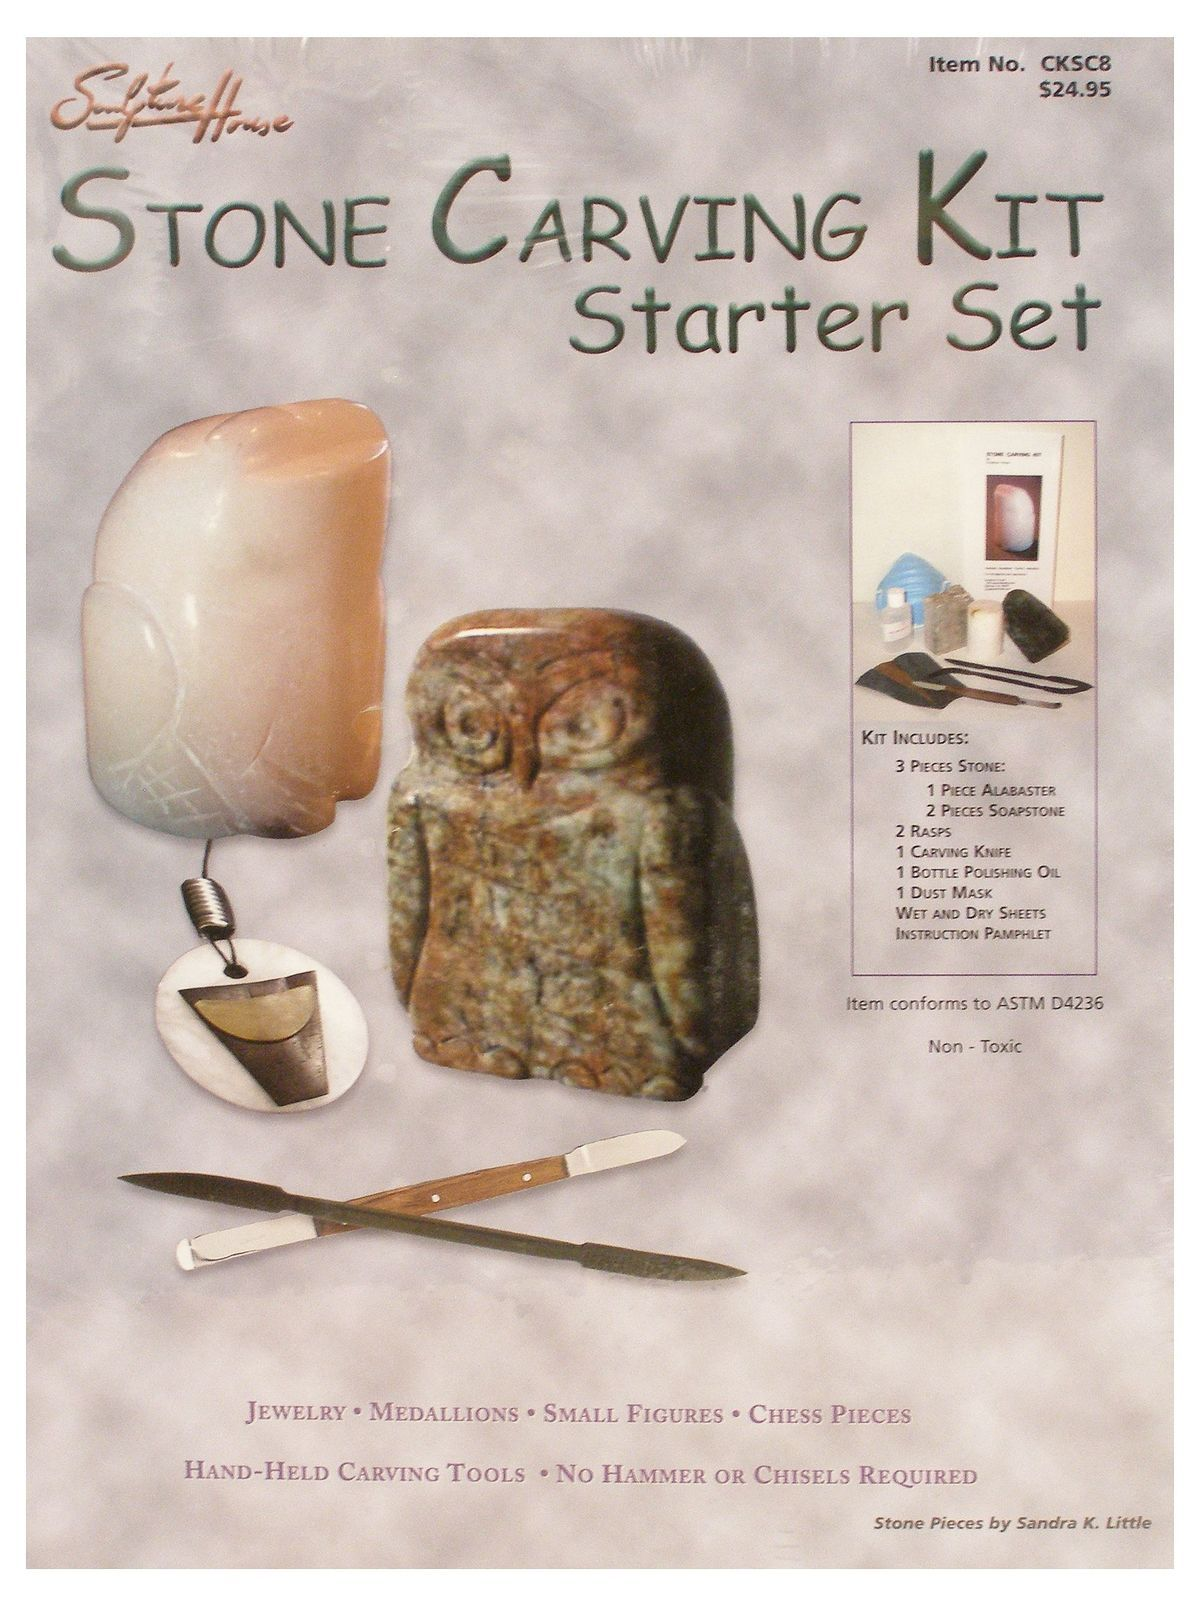 Sculpture house stone carving kit starter set